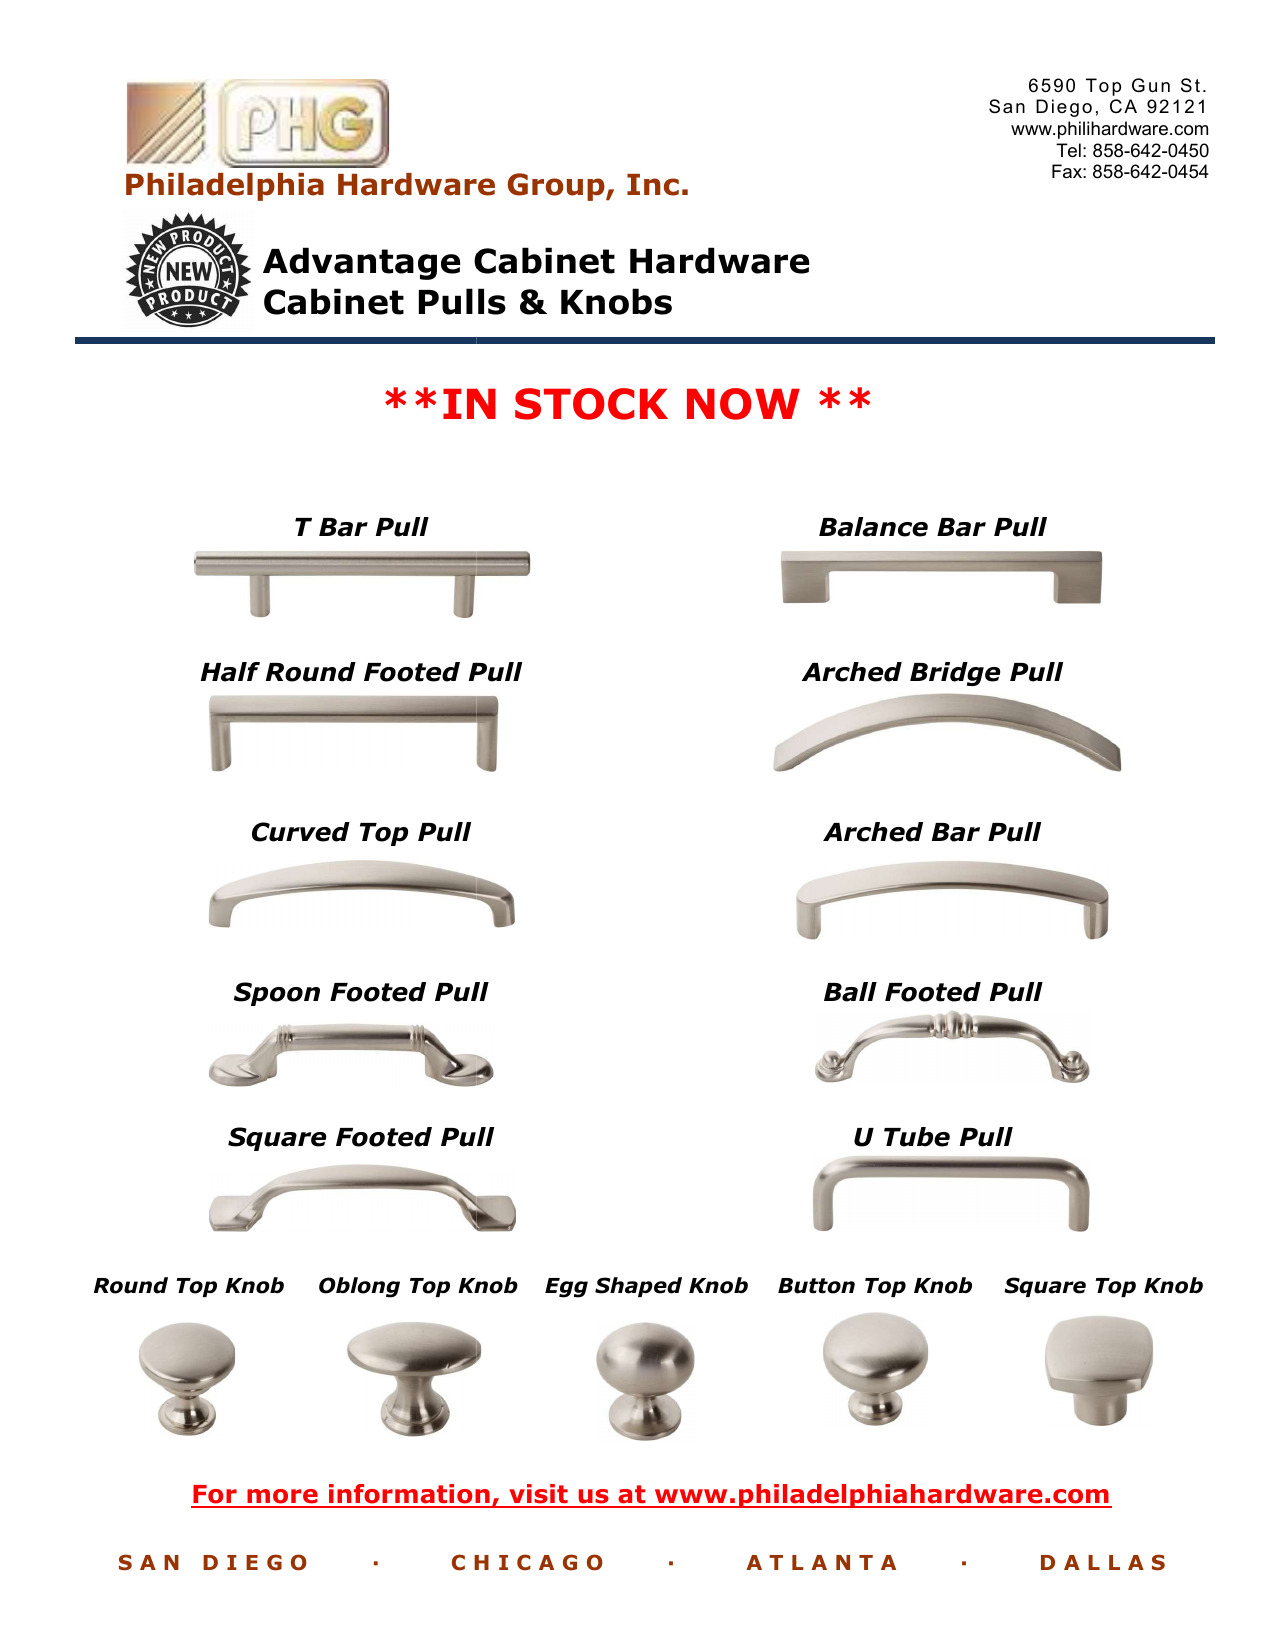 Advantage Cabinet Hardware